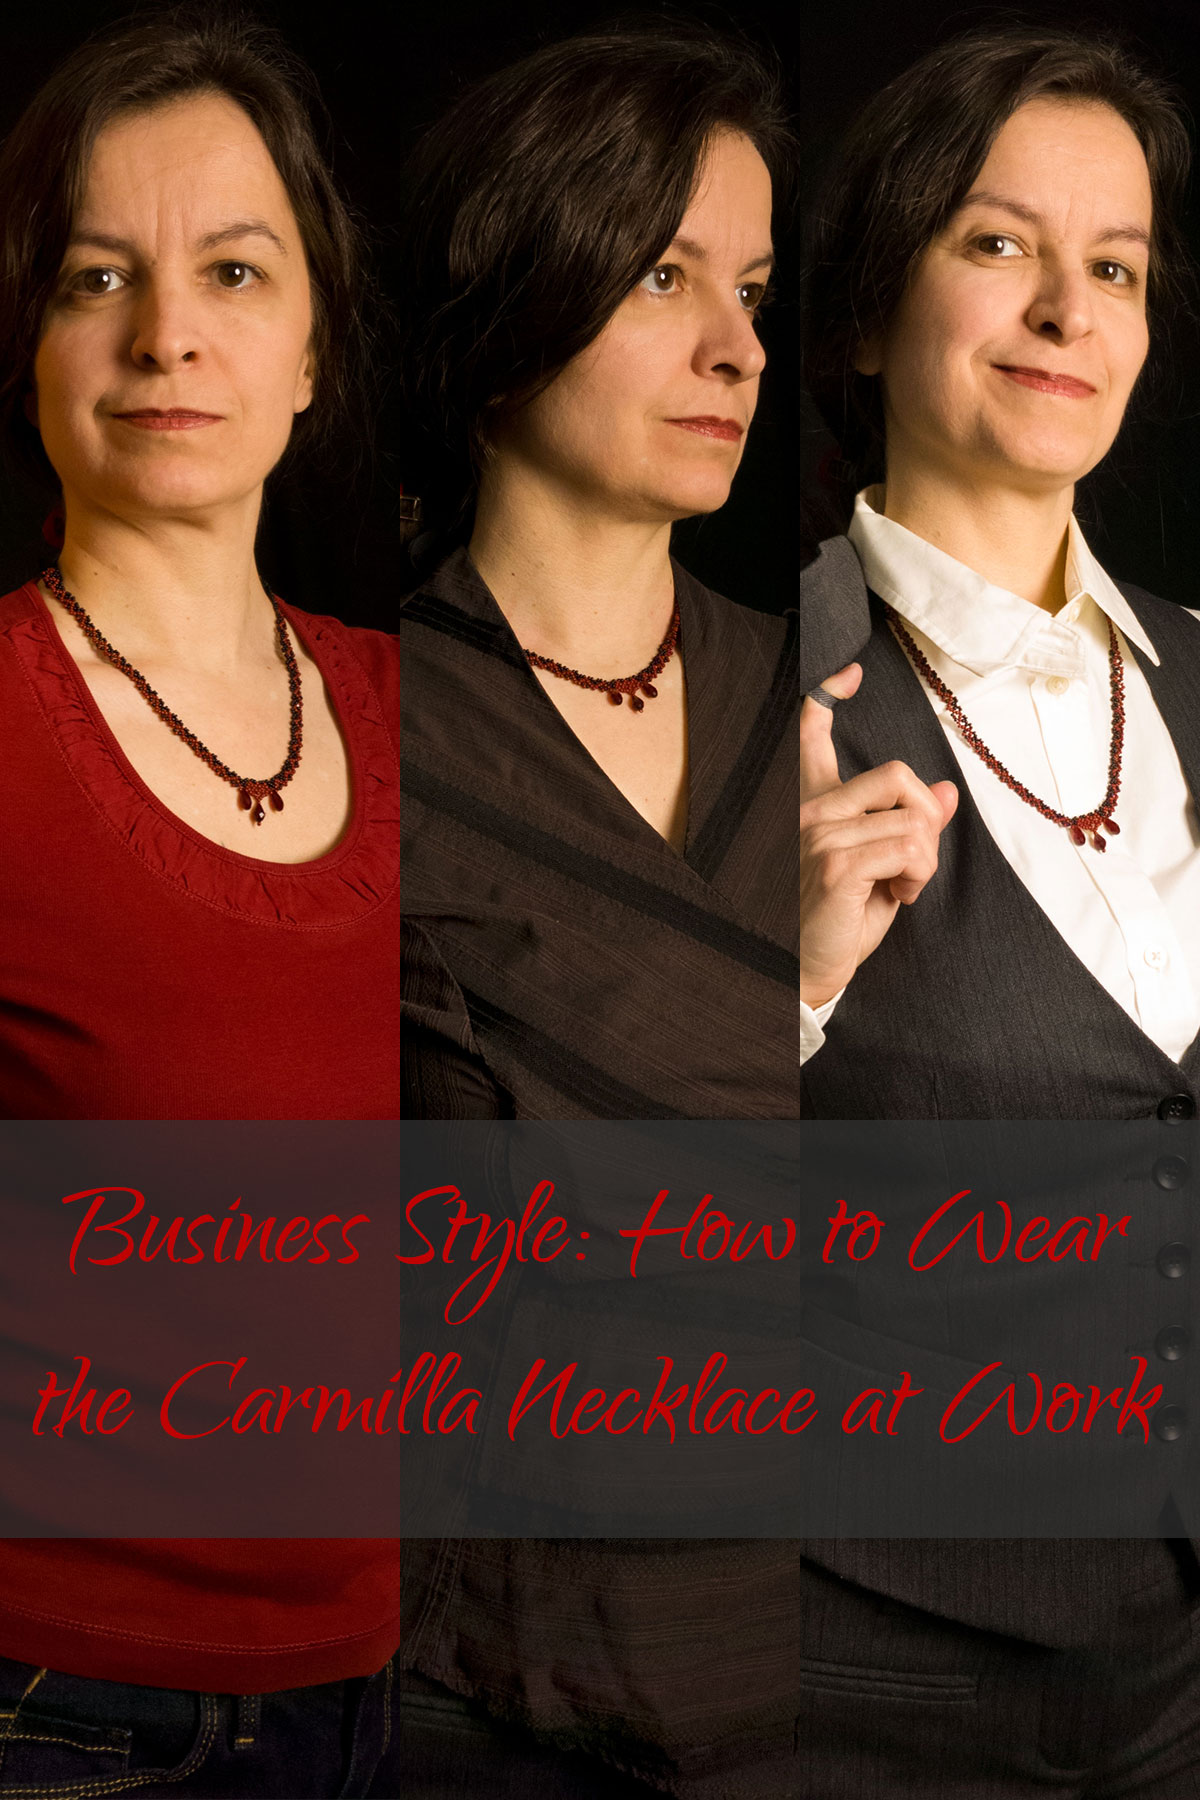 Business Style: How to Wear the Carmilla Necklace at Work